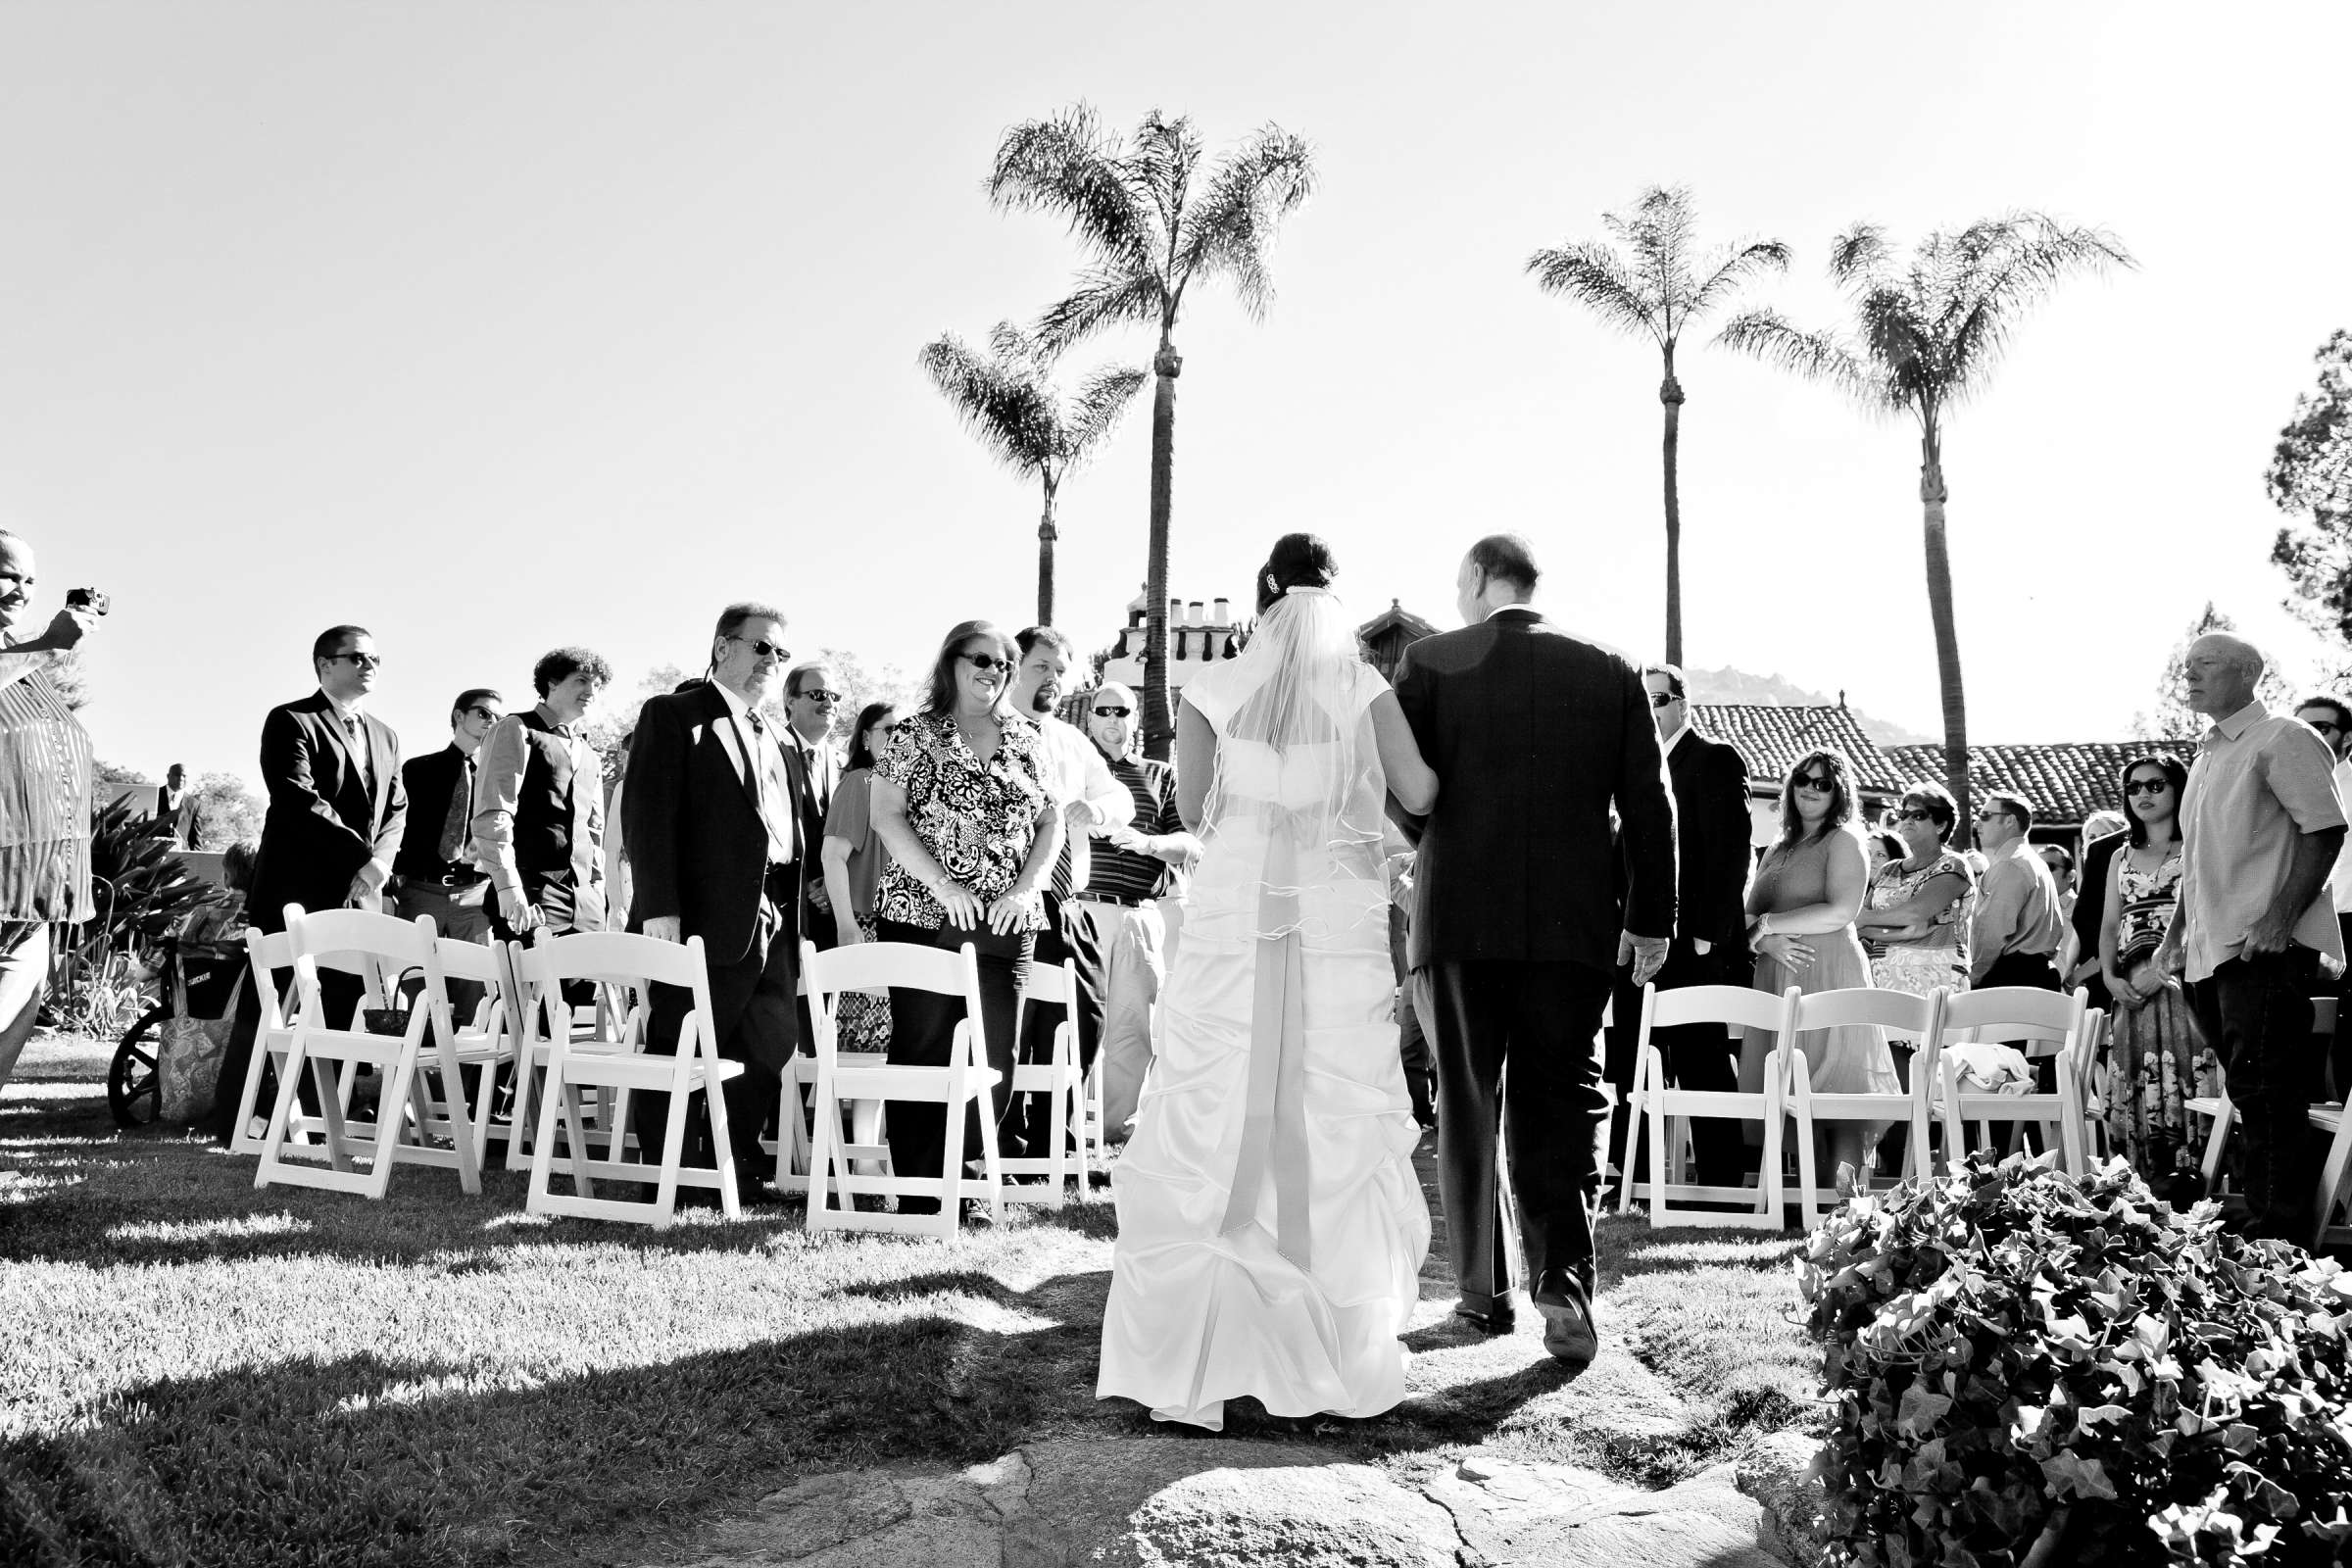 Mt Woodson Castle Wedding, Krista and Donald Wedding Photo #344715 by True Photography